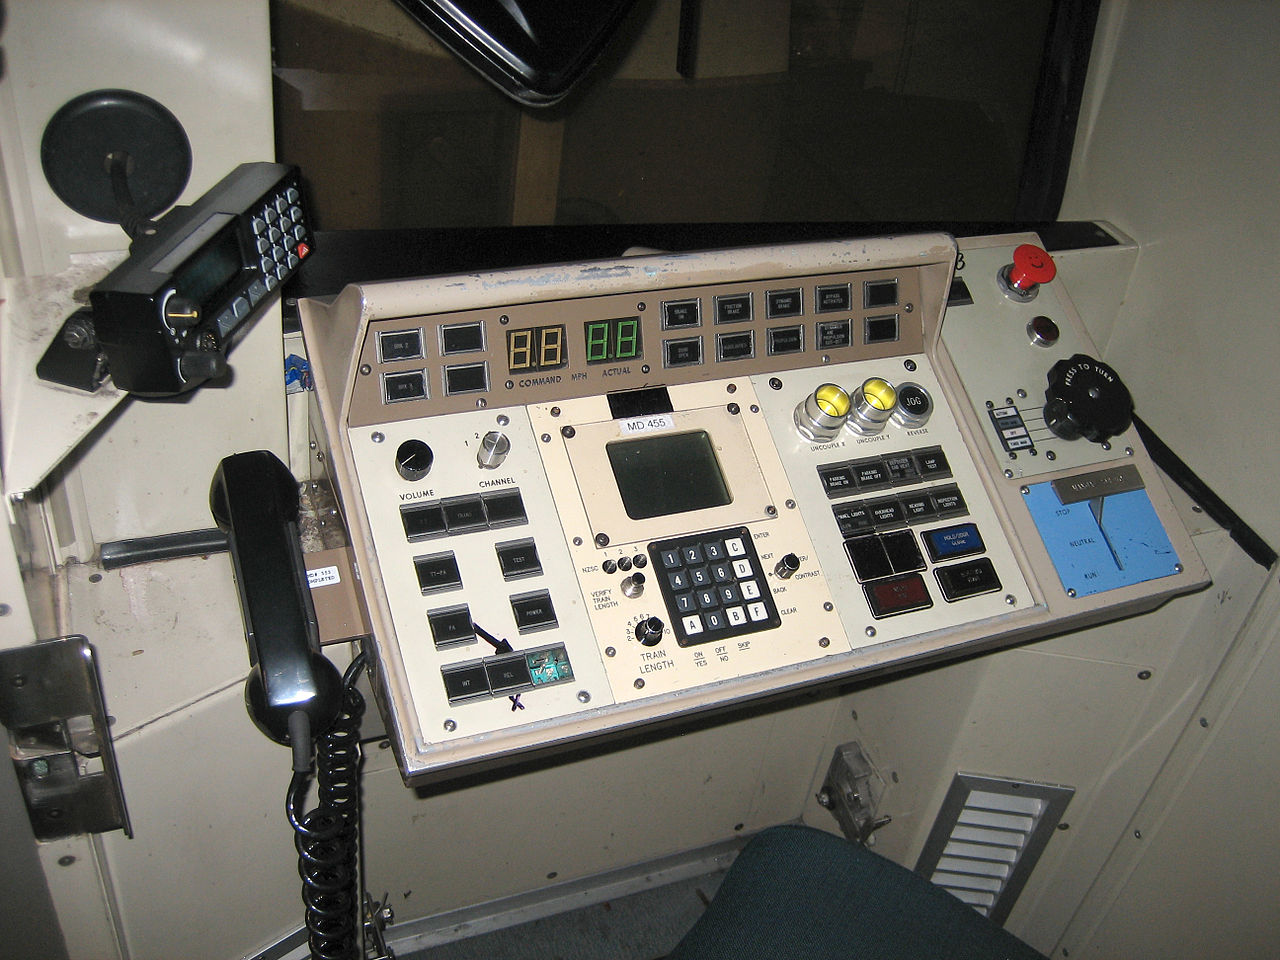 Vehicle Control Panel : File bart c car control panel g wikimedia commons